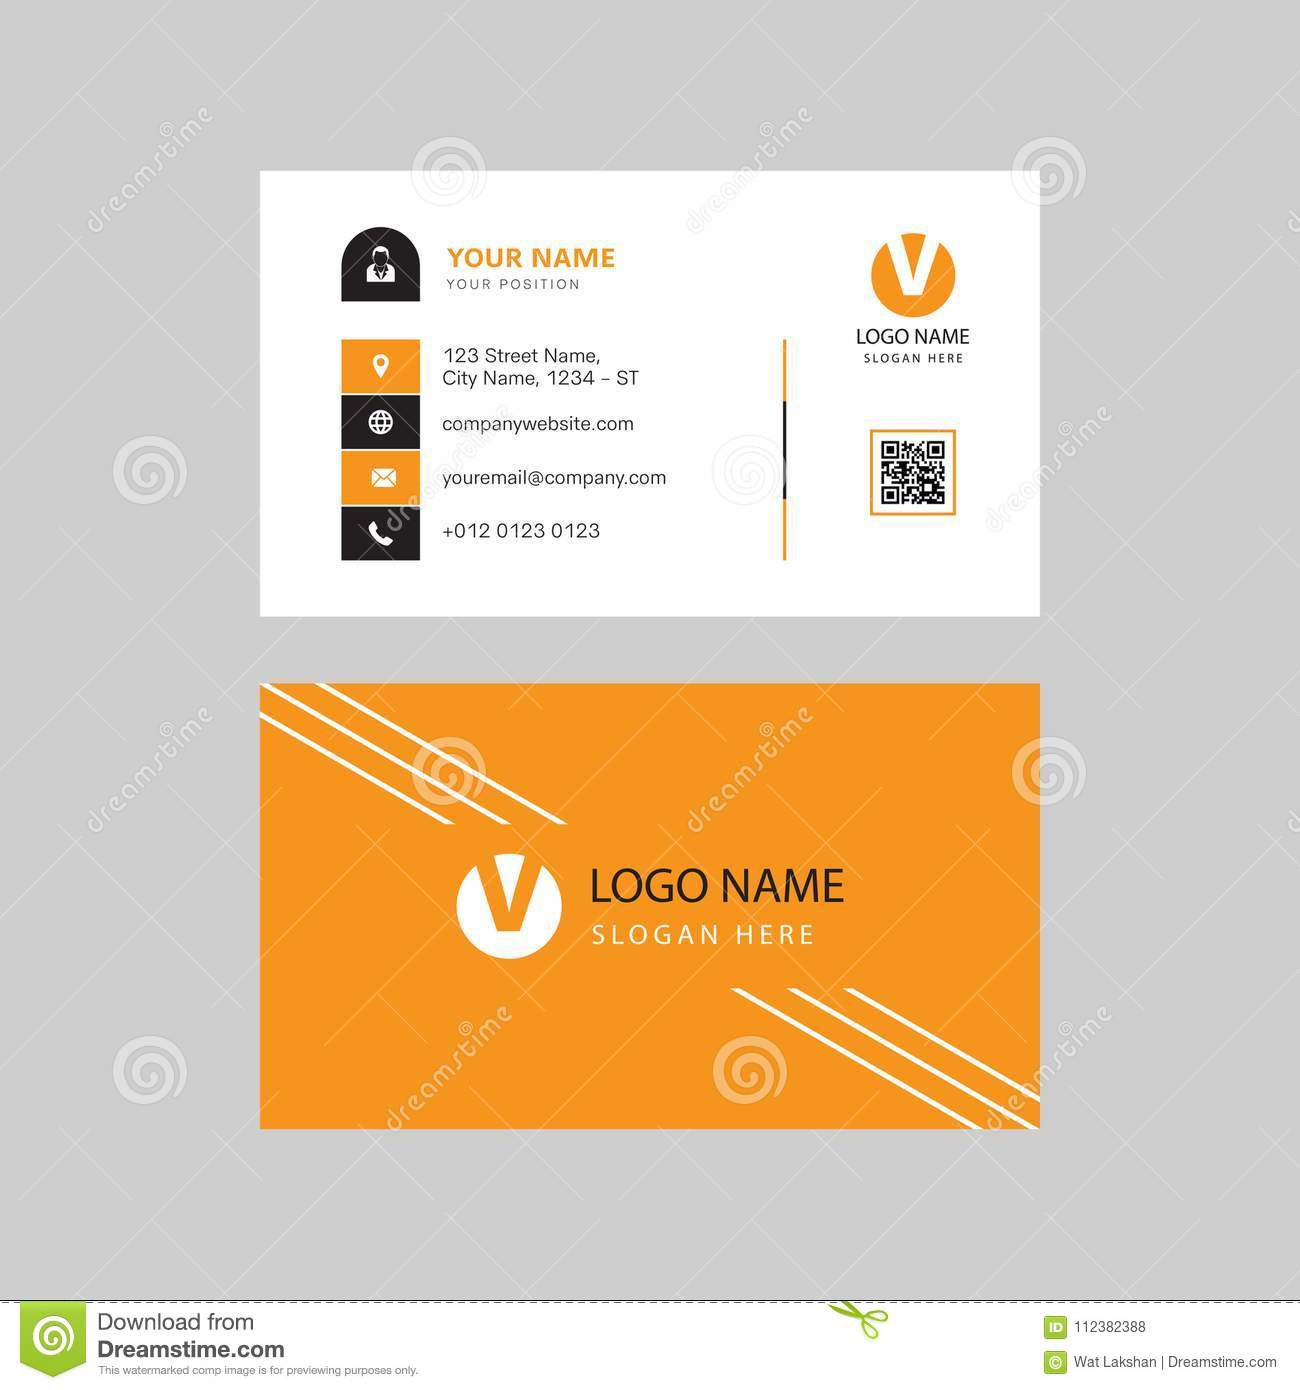 Simple Modern Professional Creative Business Card Design Stock Vector Illustration Of Corporate Print 112382388